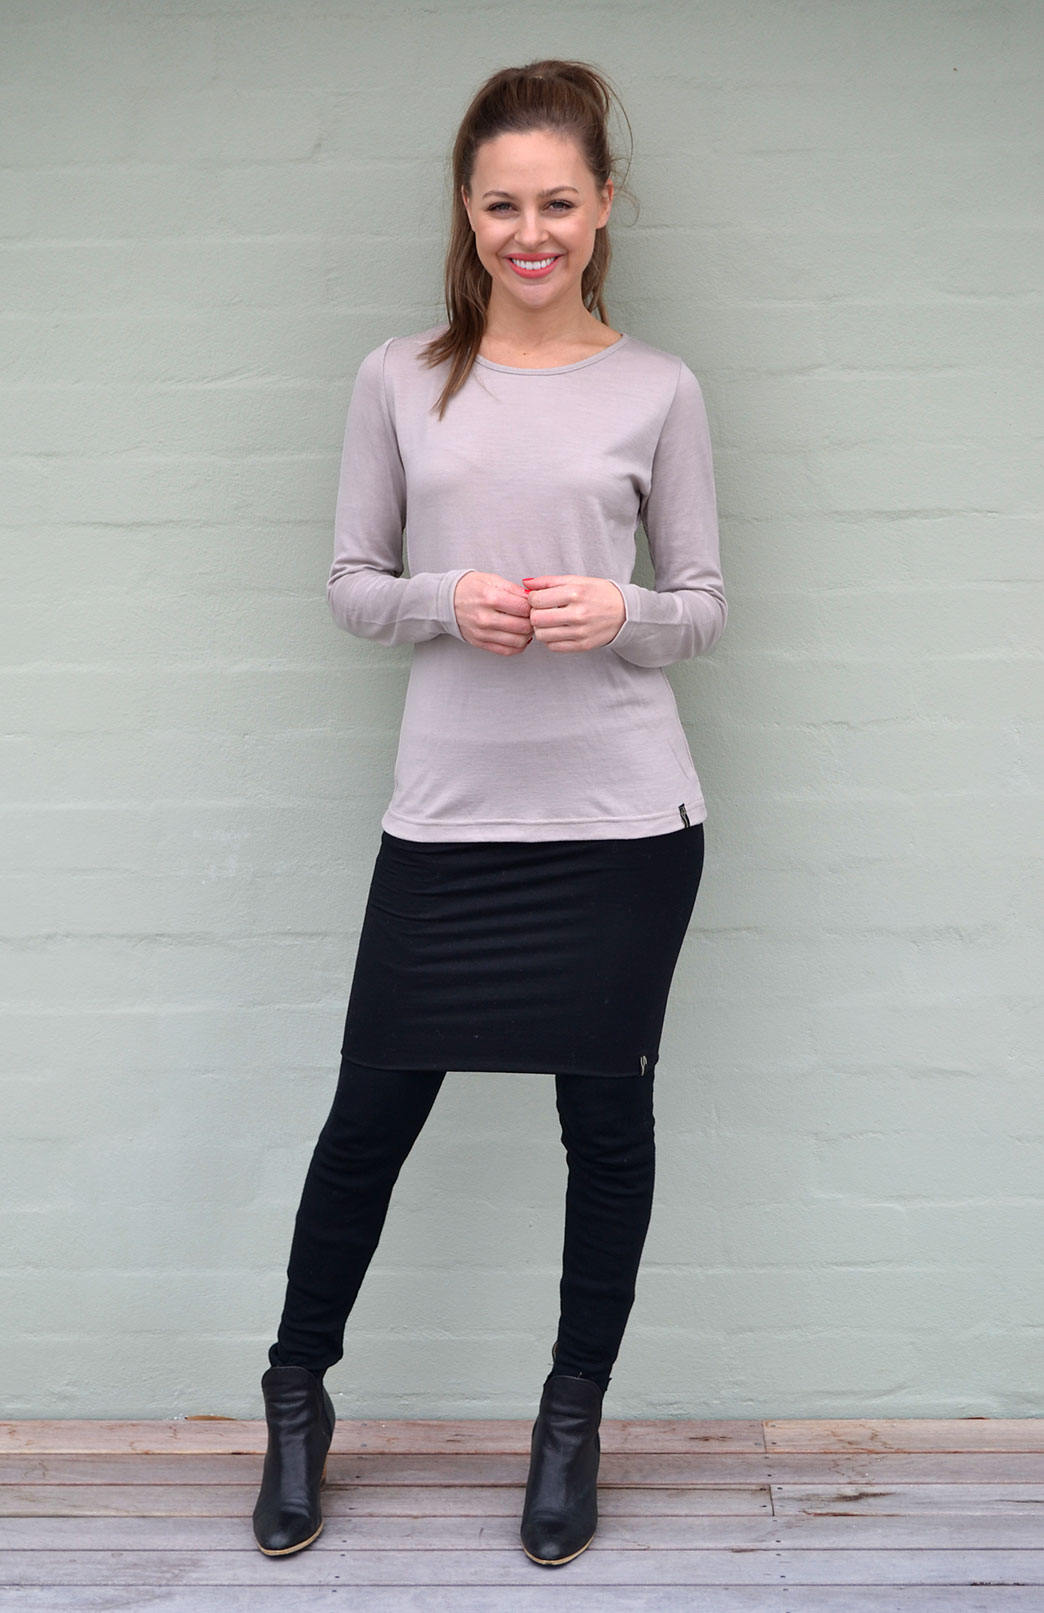 Round Neck Top - Plain - Women's Natural Stone Long Sleeved Merino Wool Thermal Top - Smitten Merino Tasmania Australia